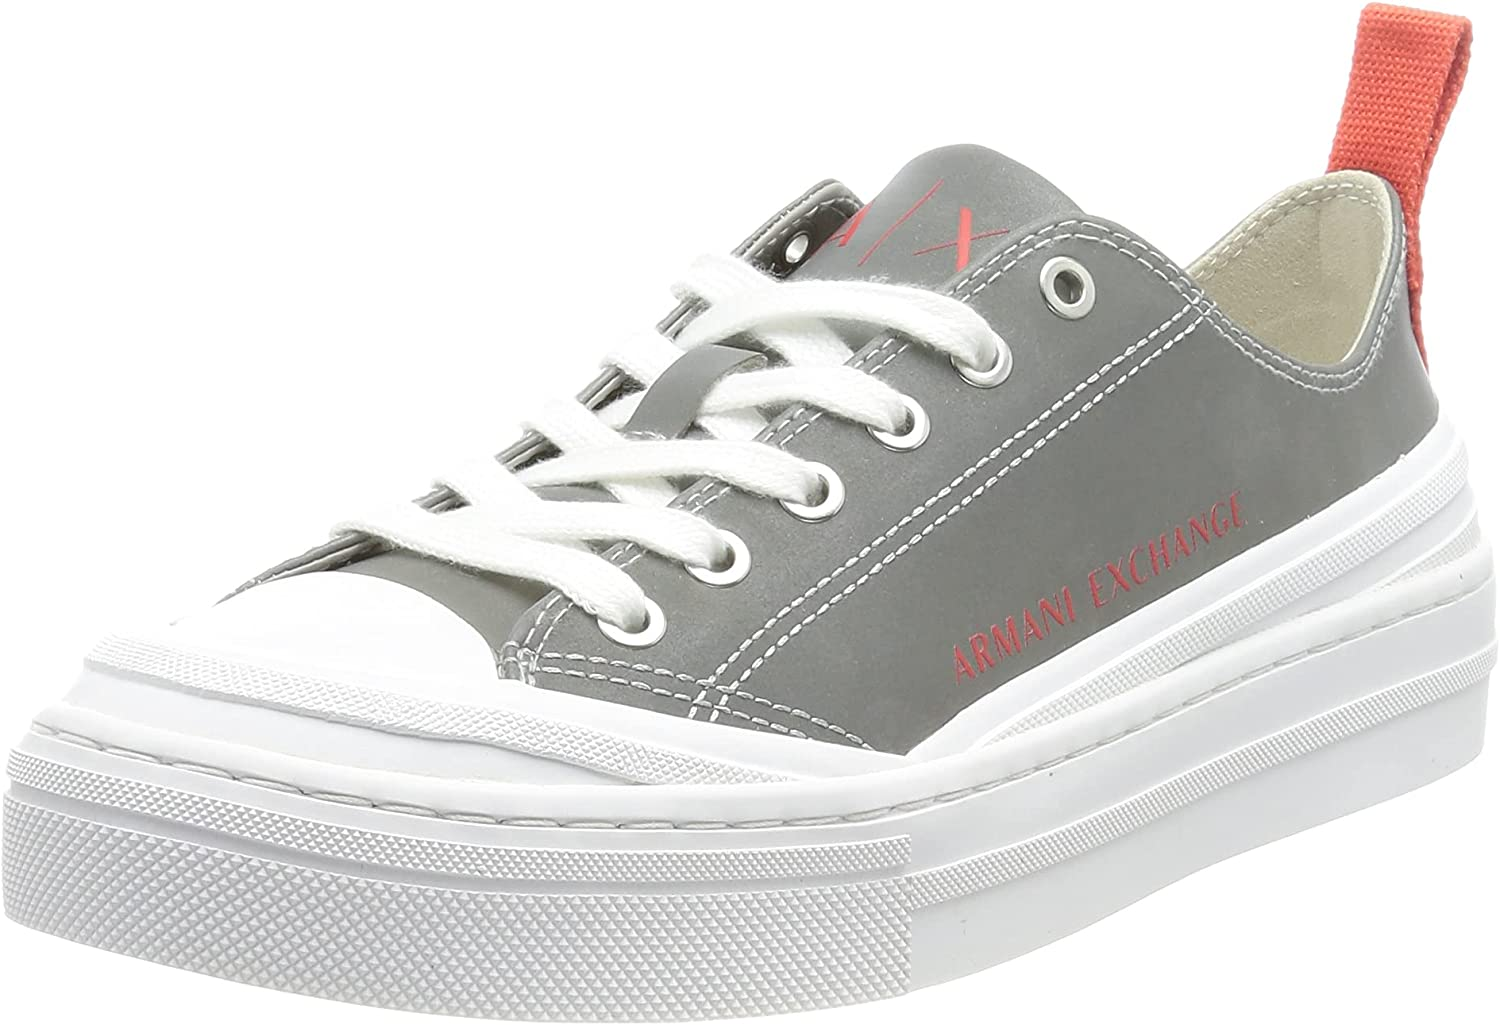 Armani At the price Exchange Limited Special Price Women's Sneaker